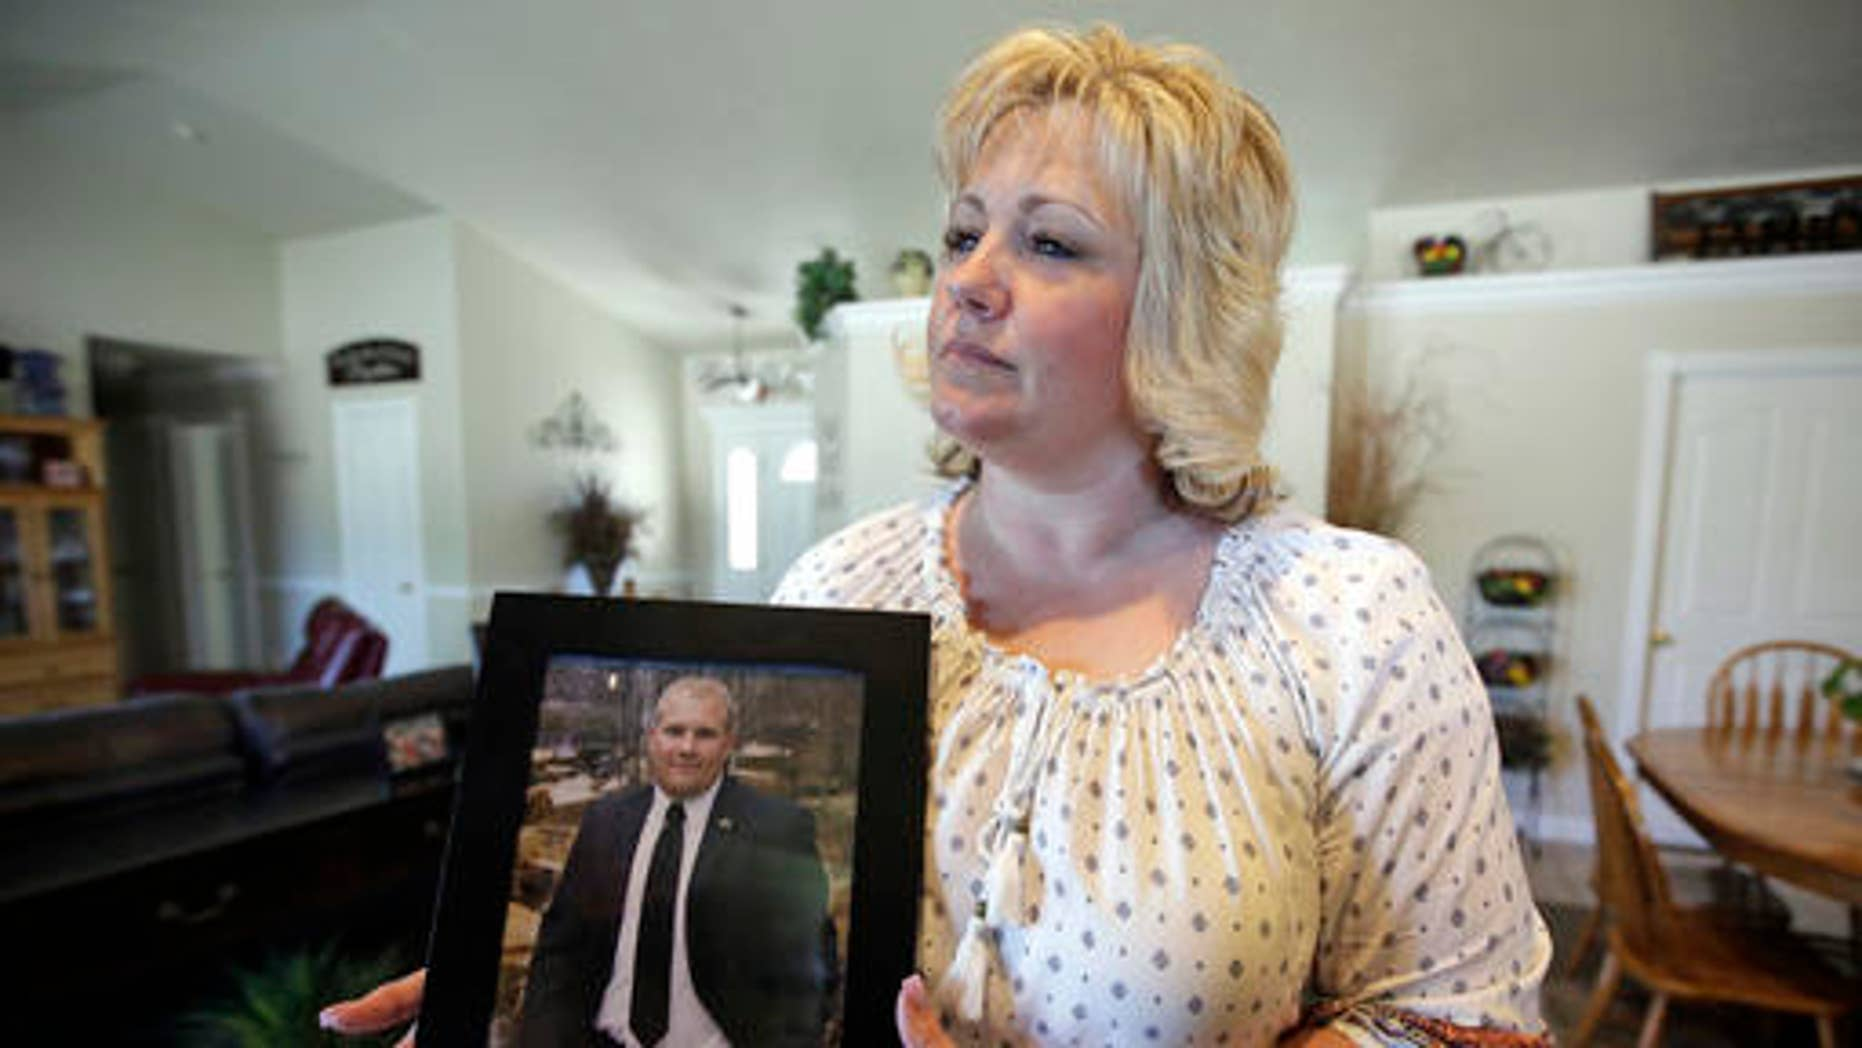 FILE - In this July 13, 2016 file photo, Laurie Holt holds a photograph of her son Josh Holt at her home, in Riverton, Utah. U.S. government officials and Holt, the mother of a Utah man jailed in Venezuela are worried about his deteriorating health. Josh Holt has been jailed since June 30 on suspicion of weapons charges. He traveled to Venezuela to marry a fellow Mormon he met online. His mother says he's innocent.  (AP Photo/Rick Bowmer, File)